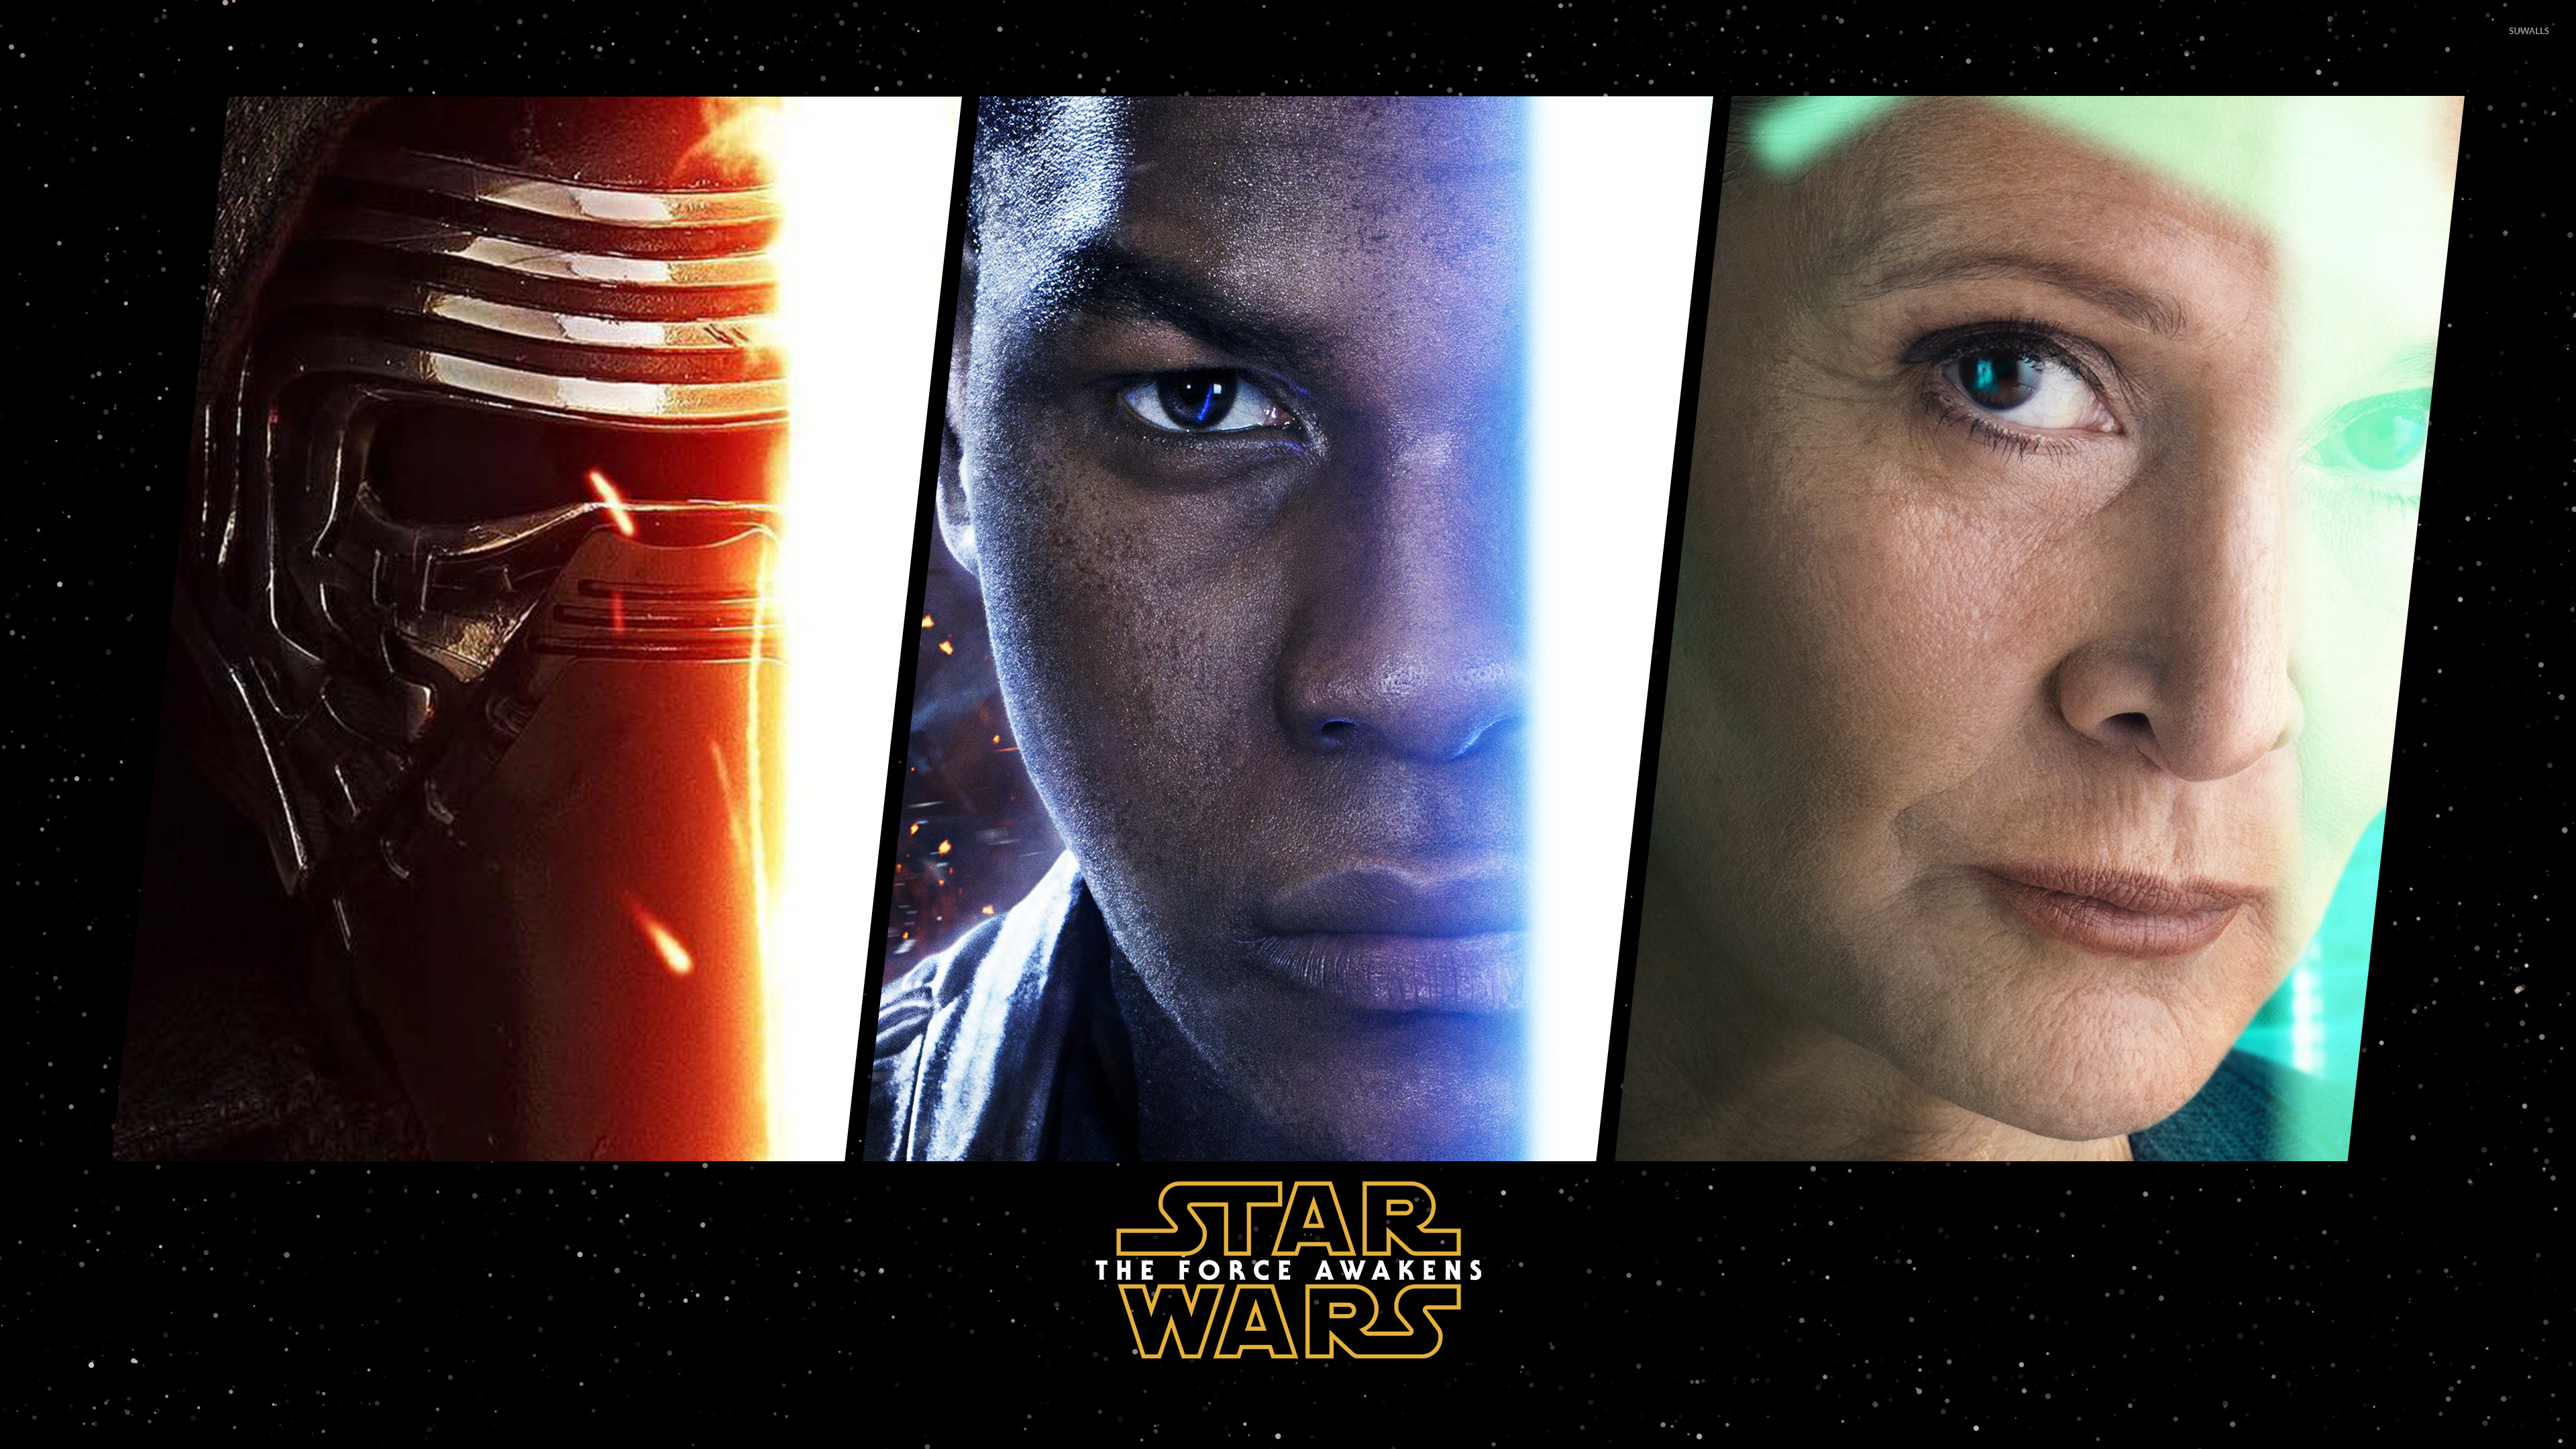 Kylo Ren Finn And Leia In Star Wars The Force Awakens Wallpaper